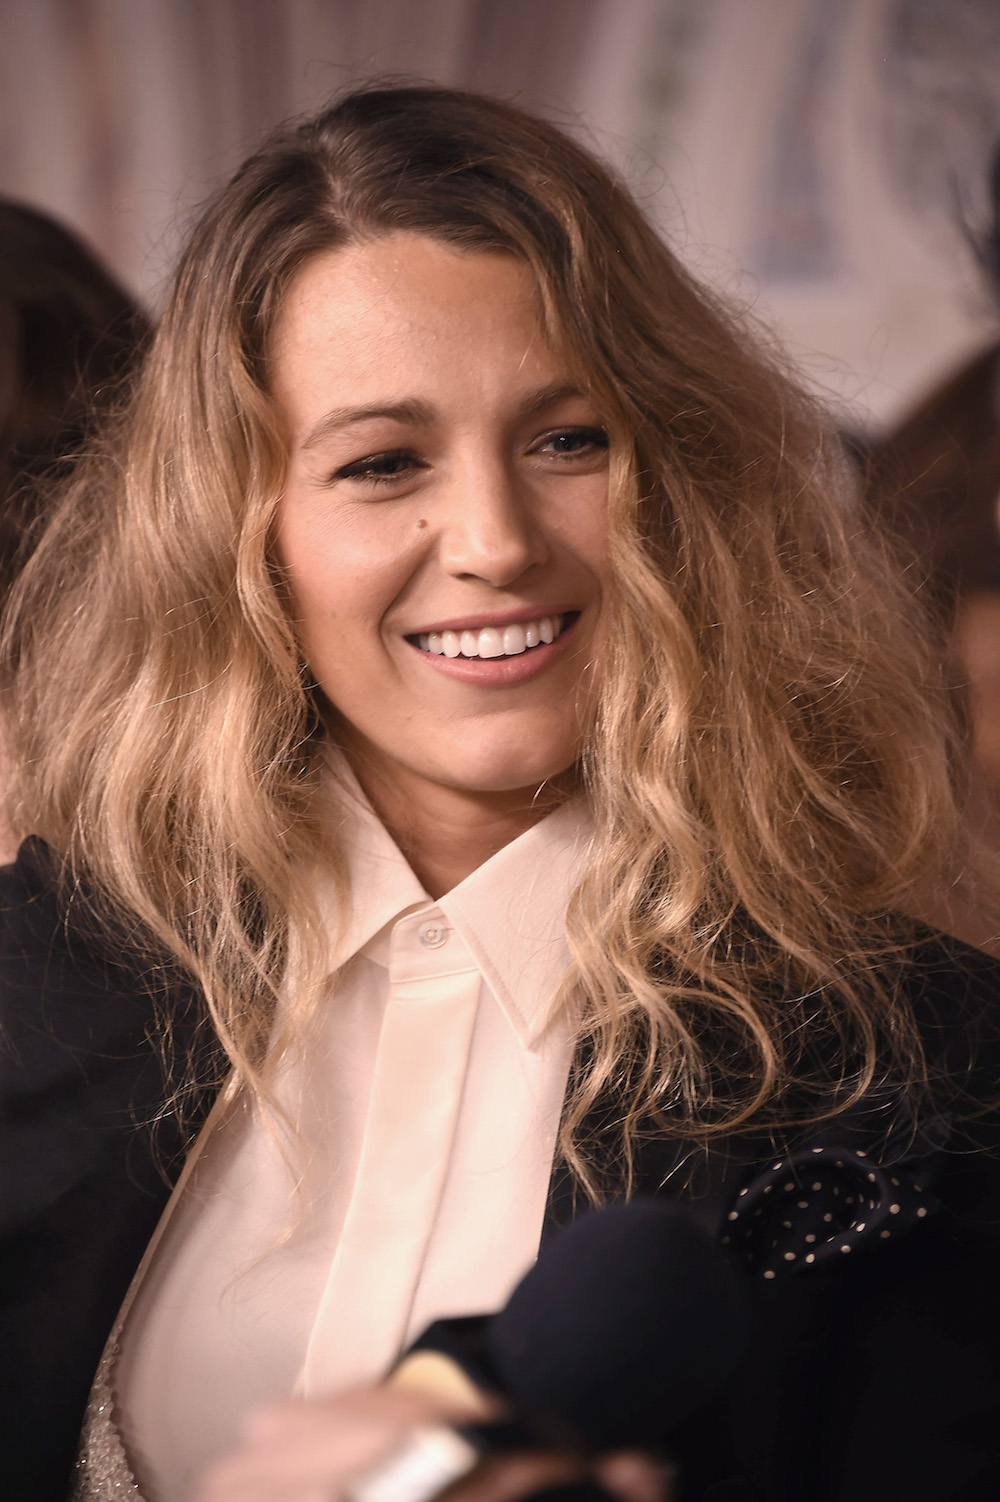 Blake Lively's New Fall Hairstyle Is a Bedhead Look